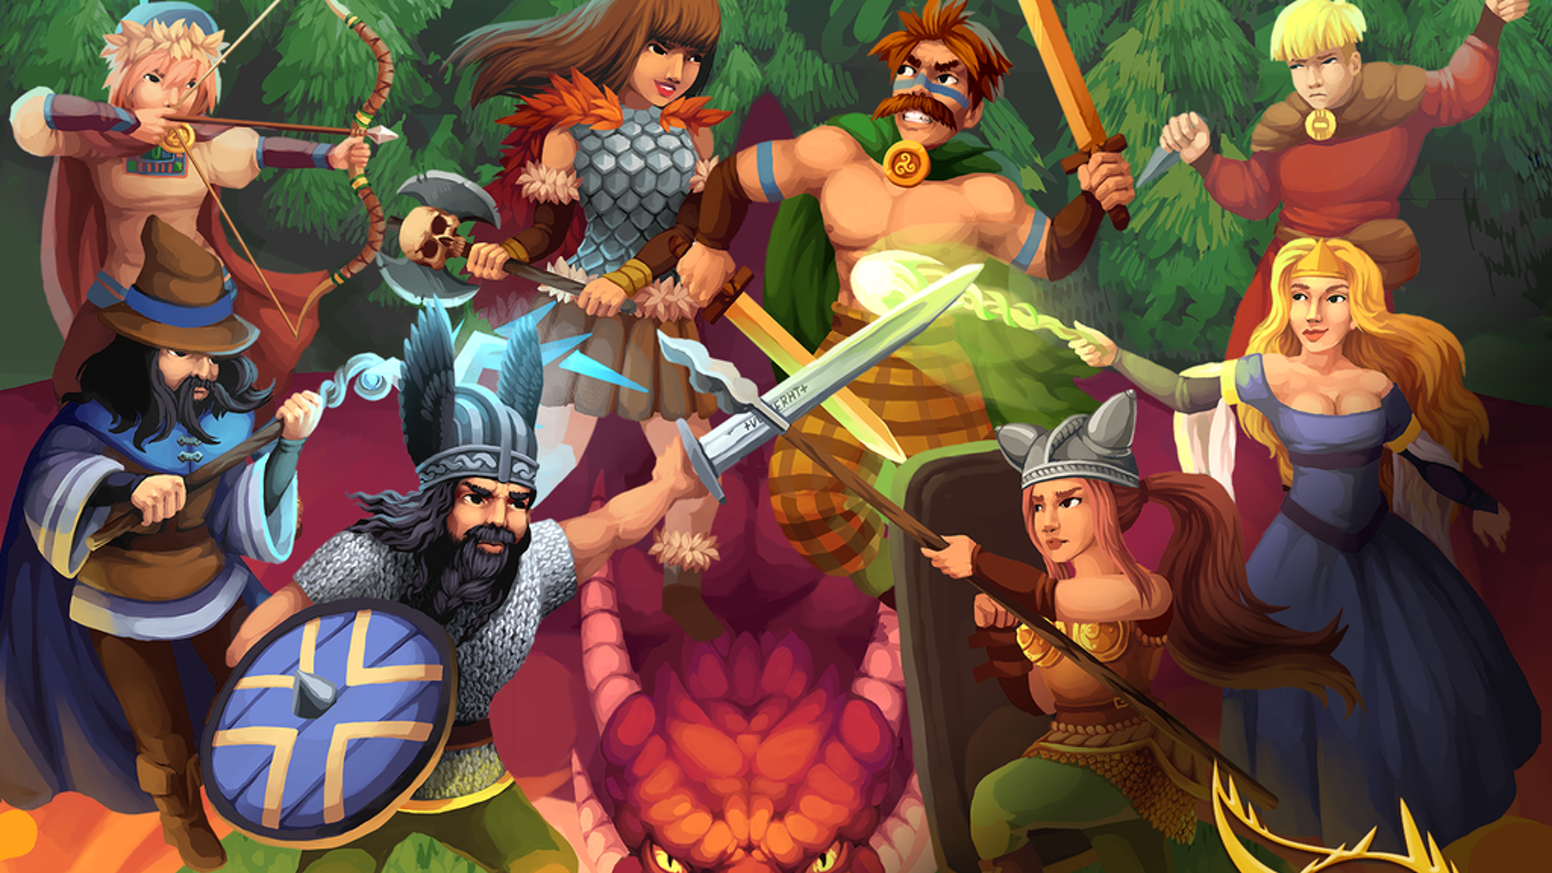 Uncover countless mysteries of the past as you battle across platforms in this 2D action RPG inspired by Viking mythology.